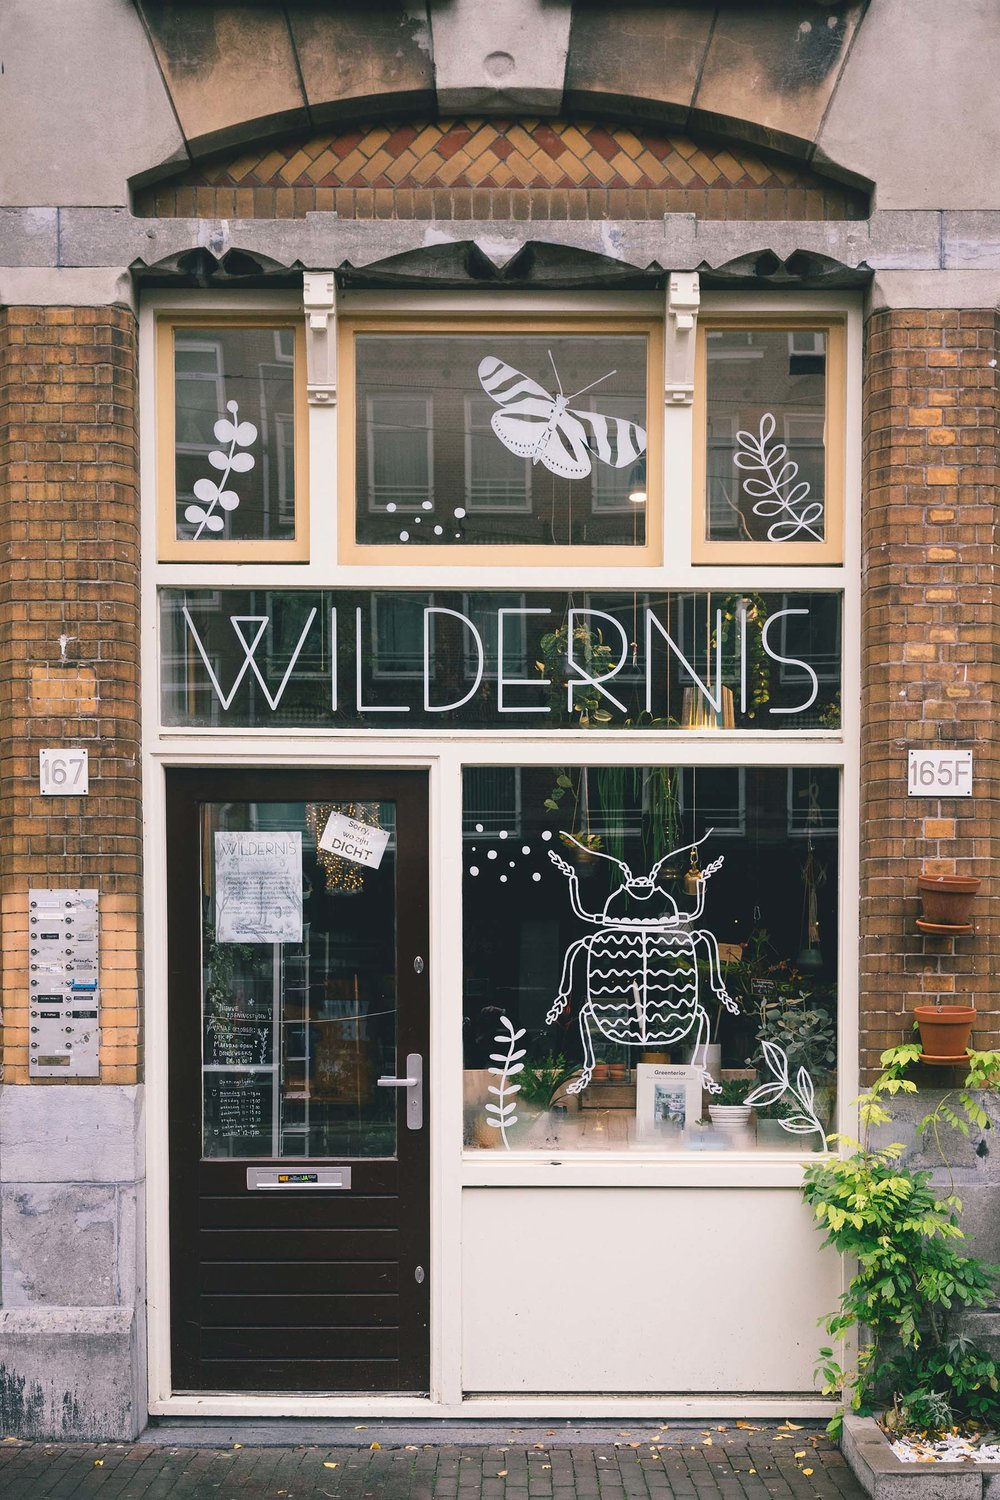 Wildernis - Amsterdam Wildernis is a plant shop and cafe in one, equipped with all the tools and plants necessary to transform any space into a luscious green one.